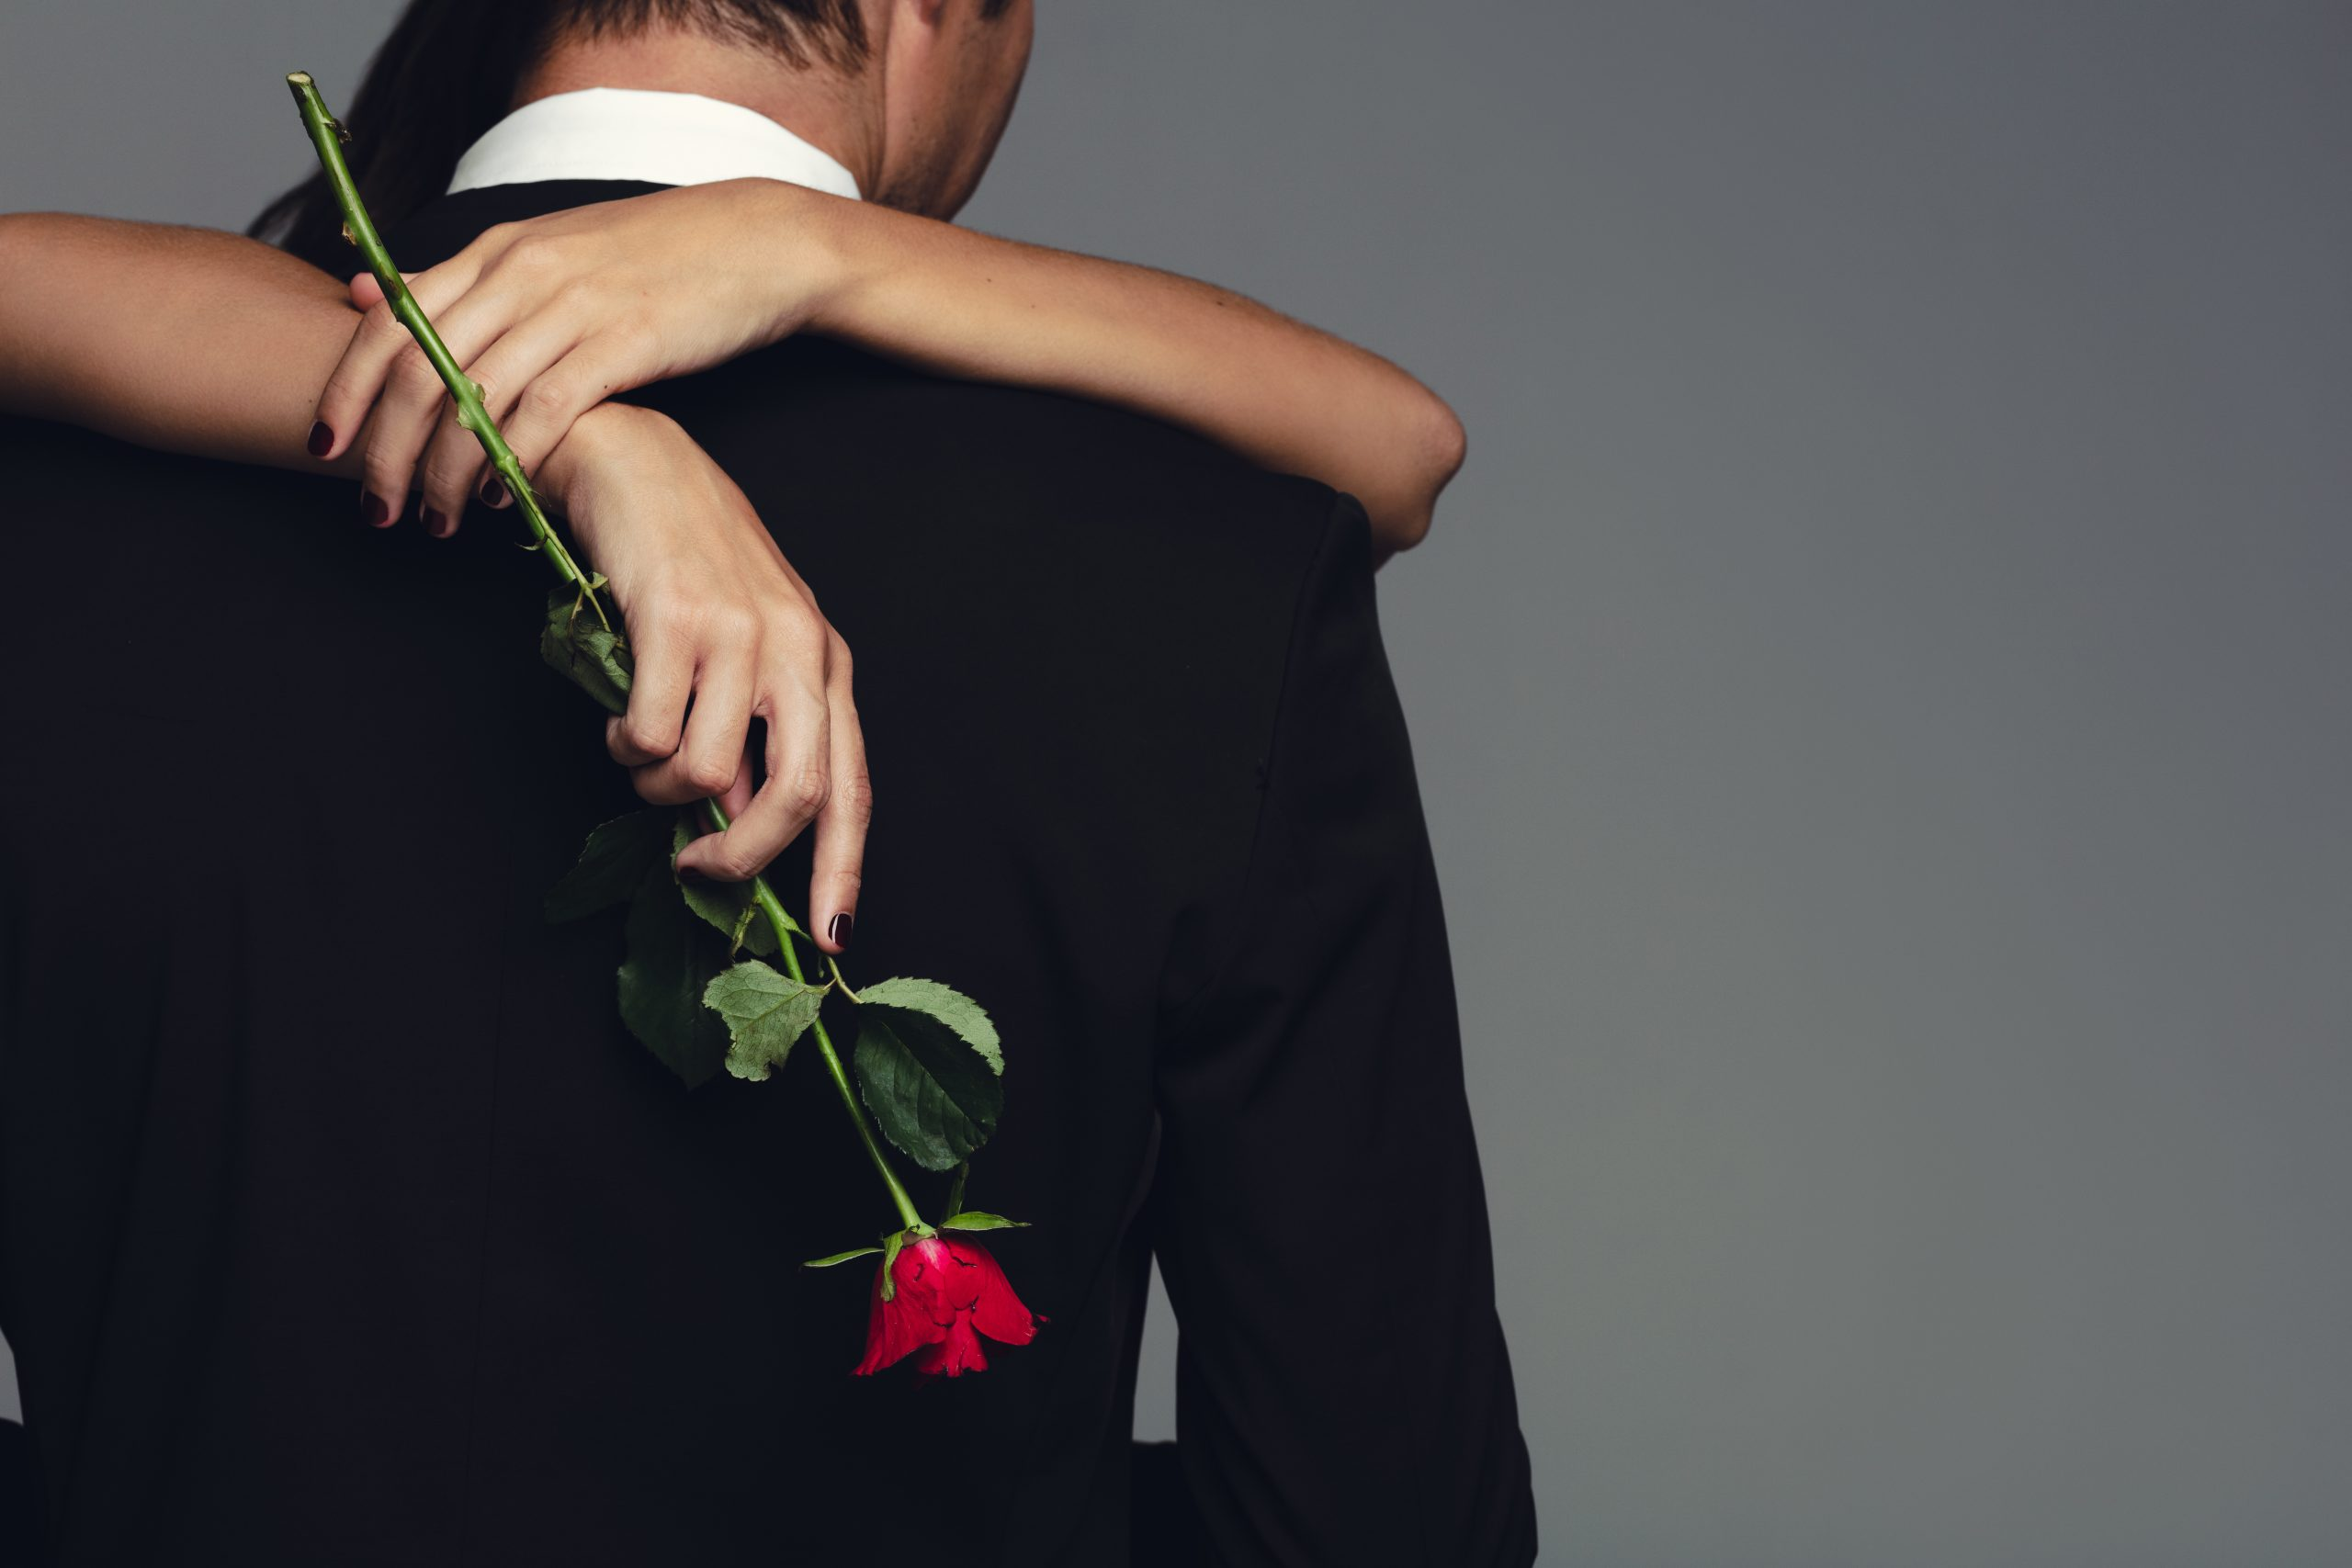 The Most Toxic Season Yet Is The Bachelor Normalizing Unhealthy Relationships